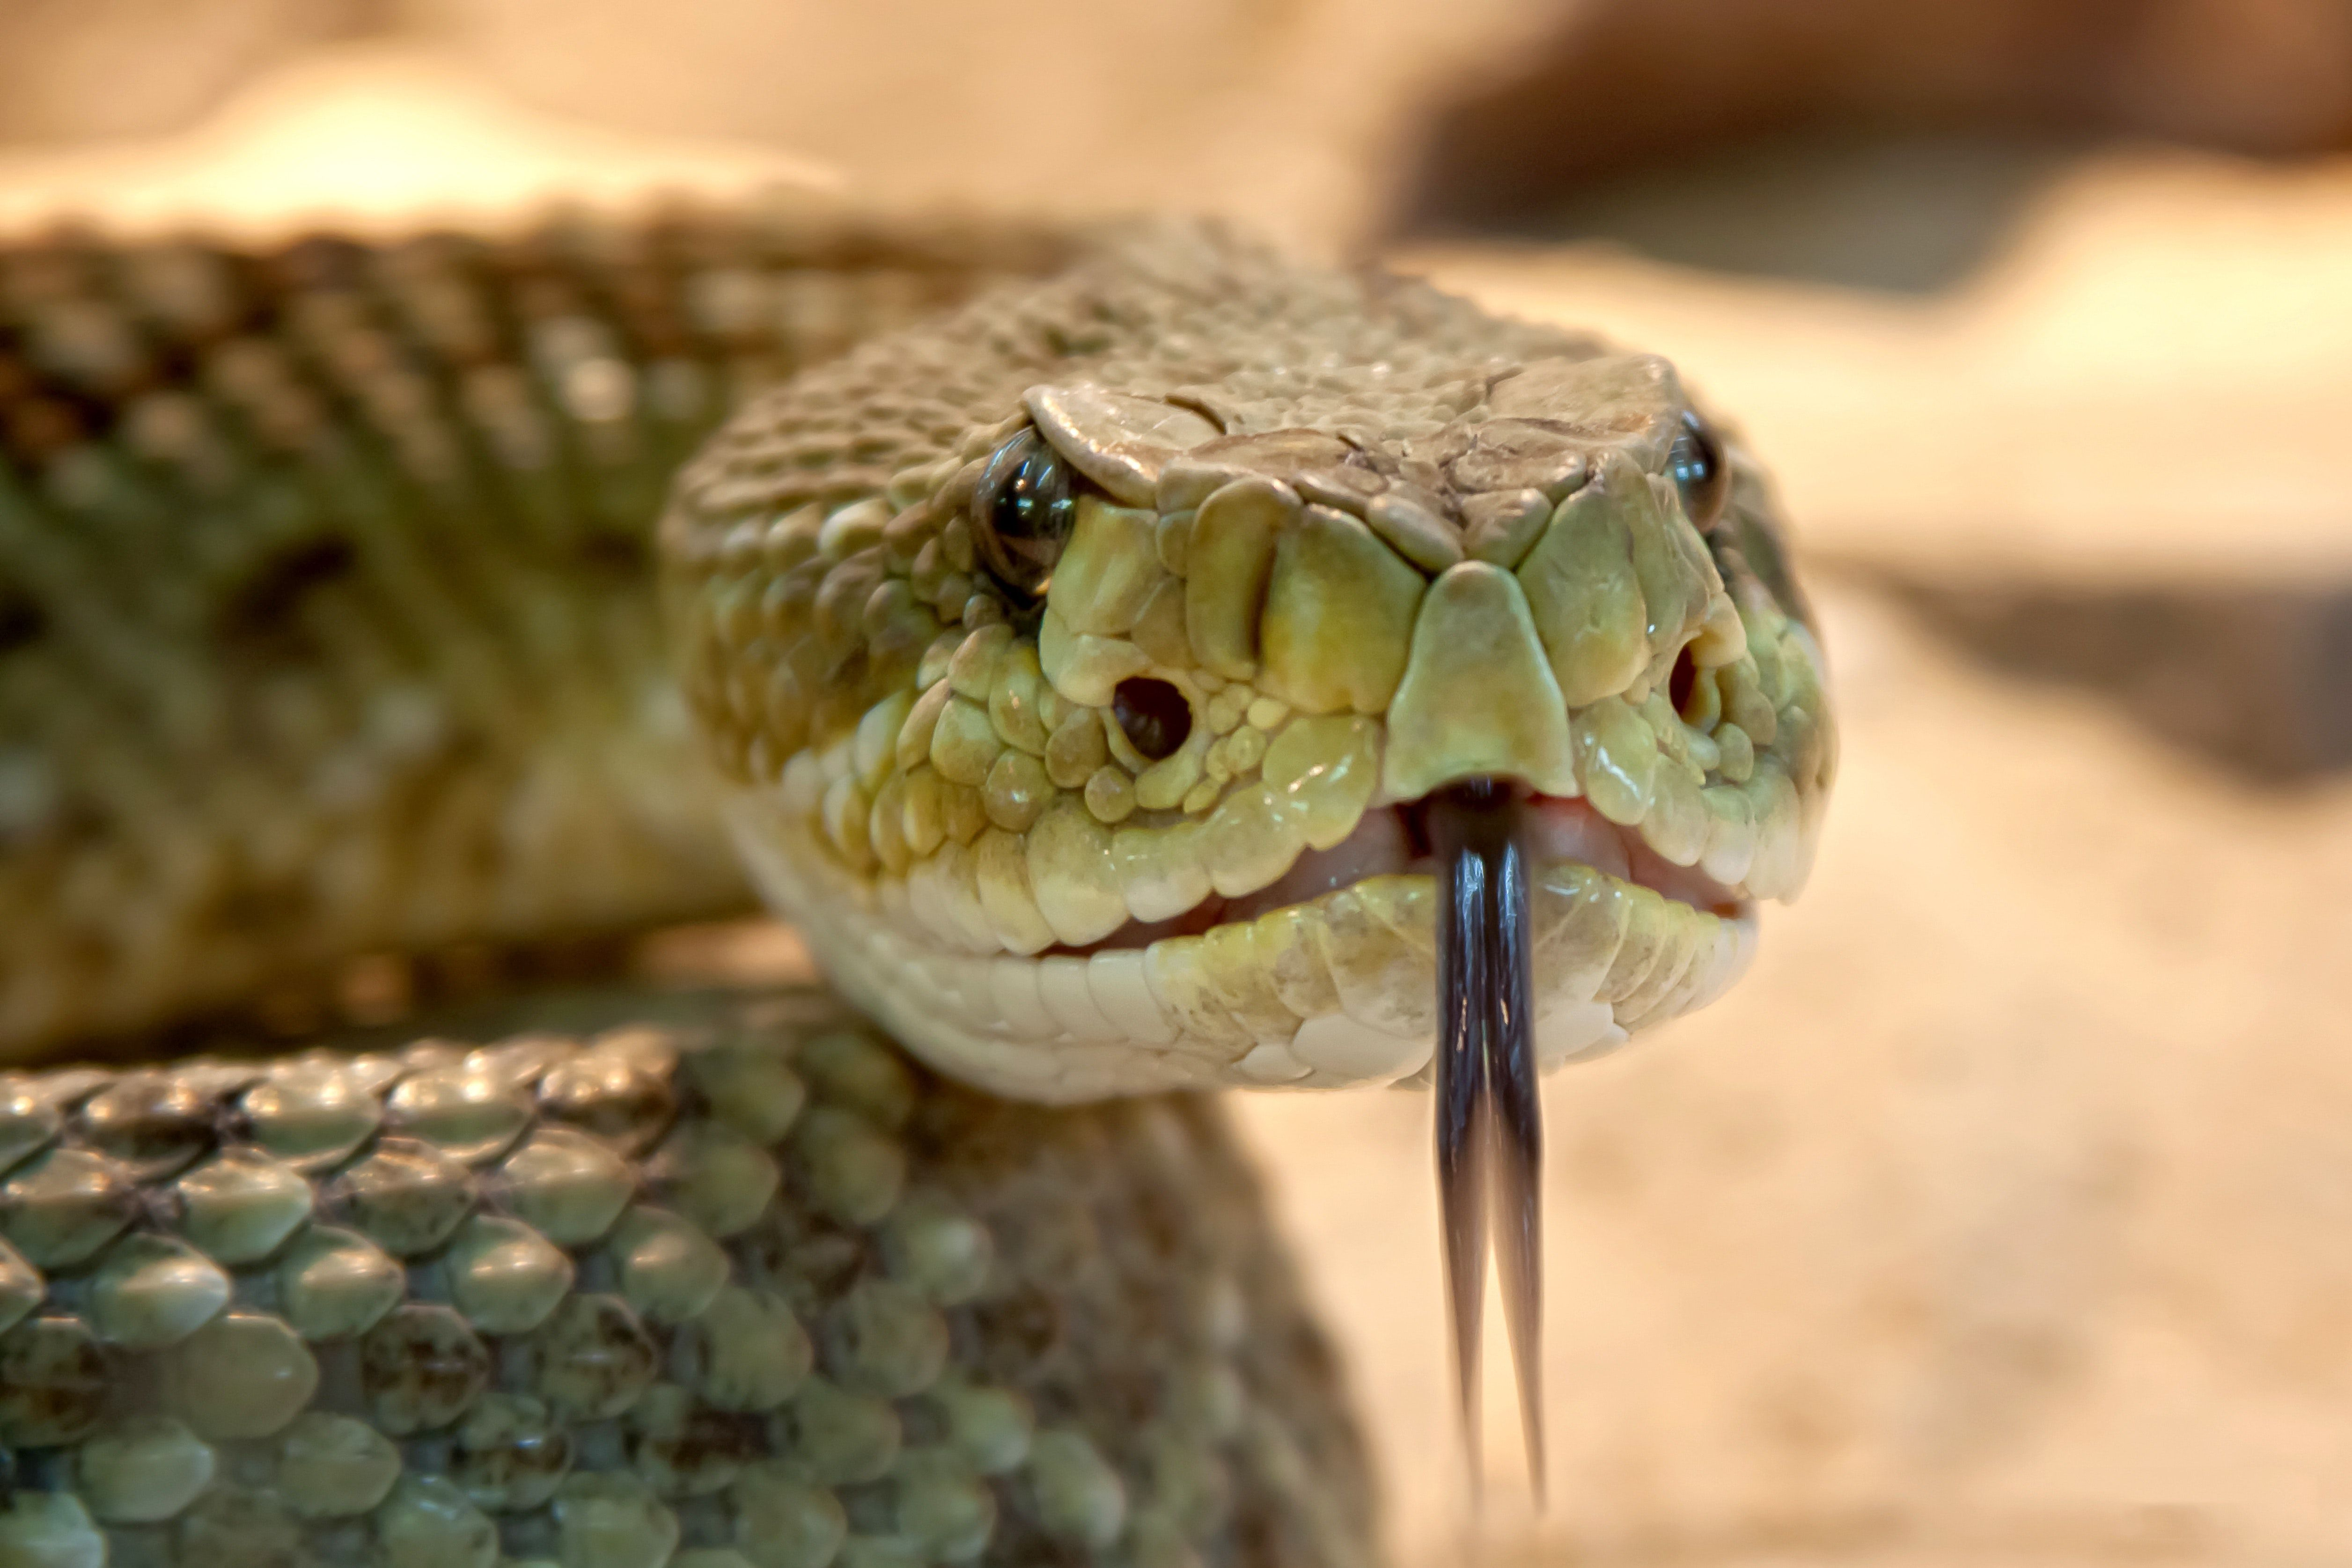 Prevent reptile attacks from derailing your case